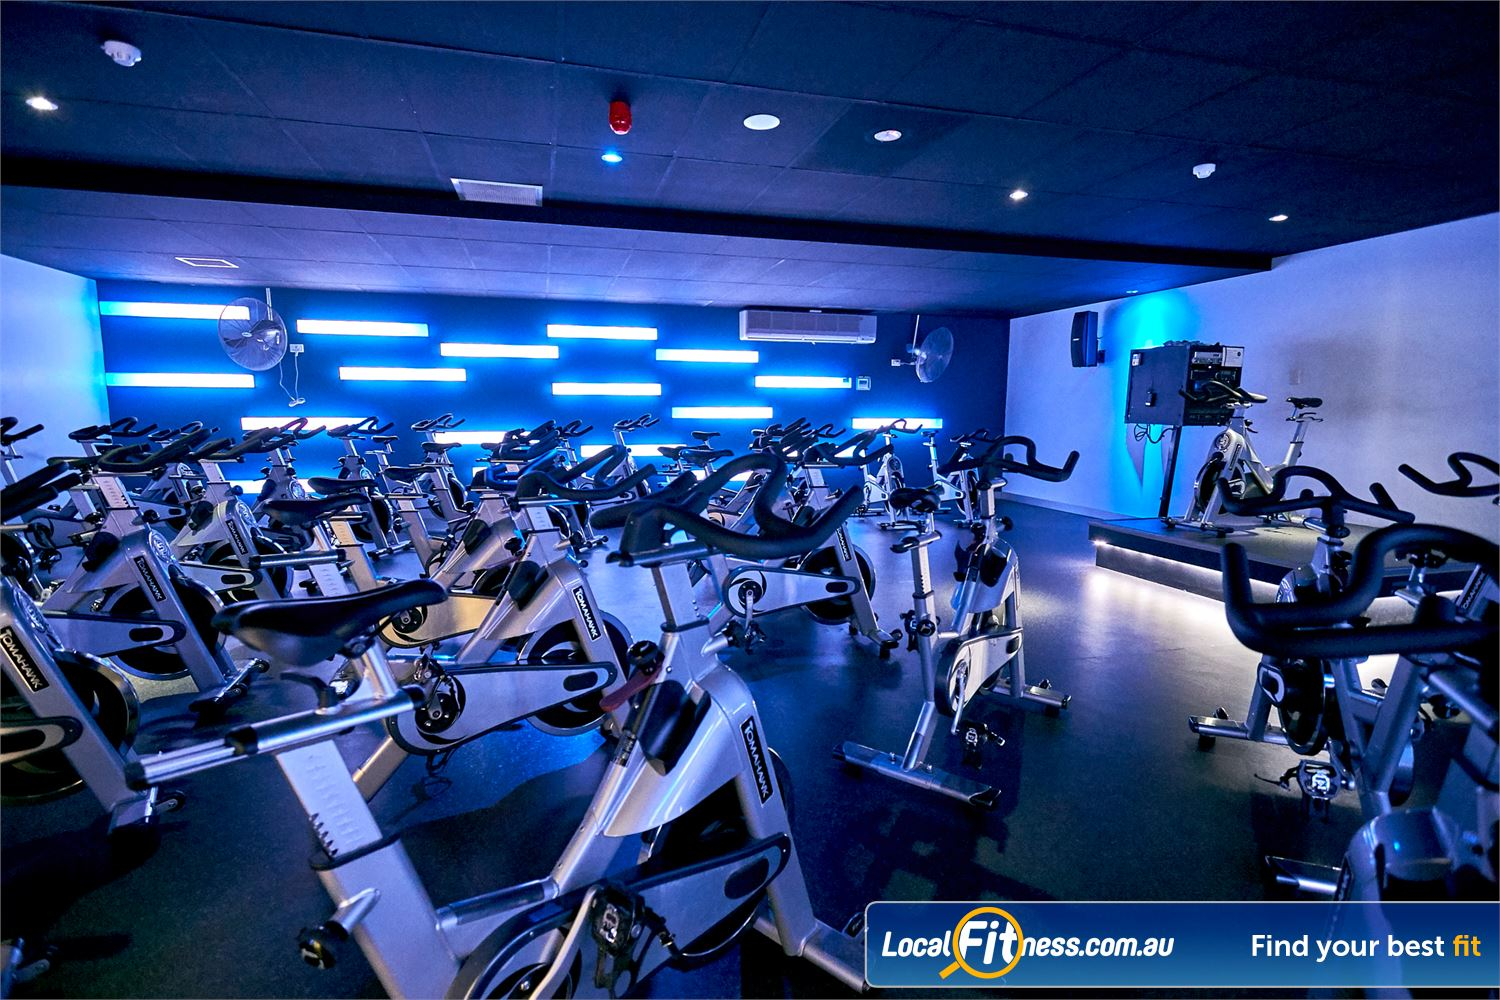 Goodlife Health Clubs Cross Roads Westbourne Park Join in the fun of Westbourne Park cycle classes in our state of the art cycle studio.